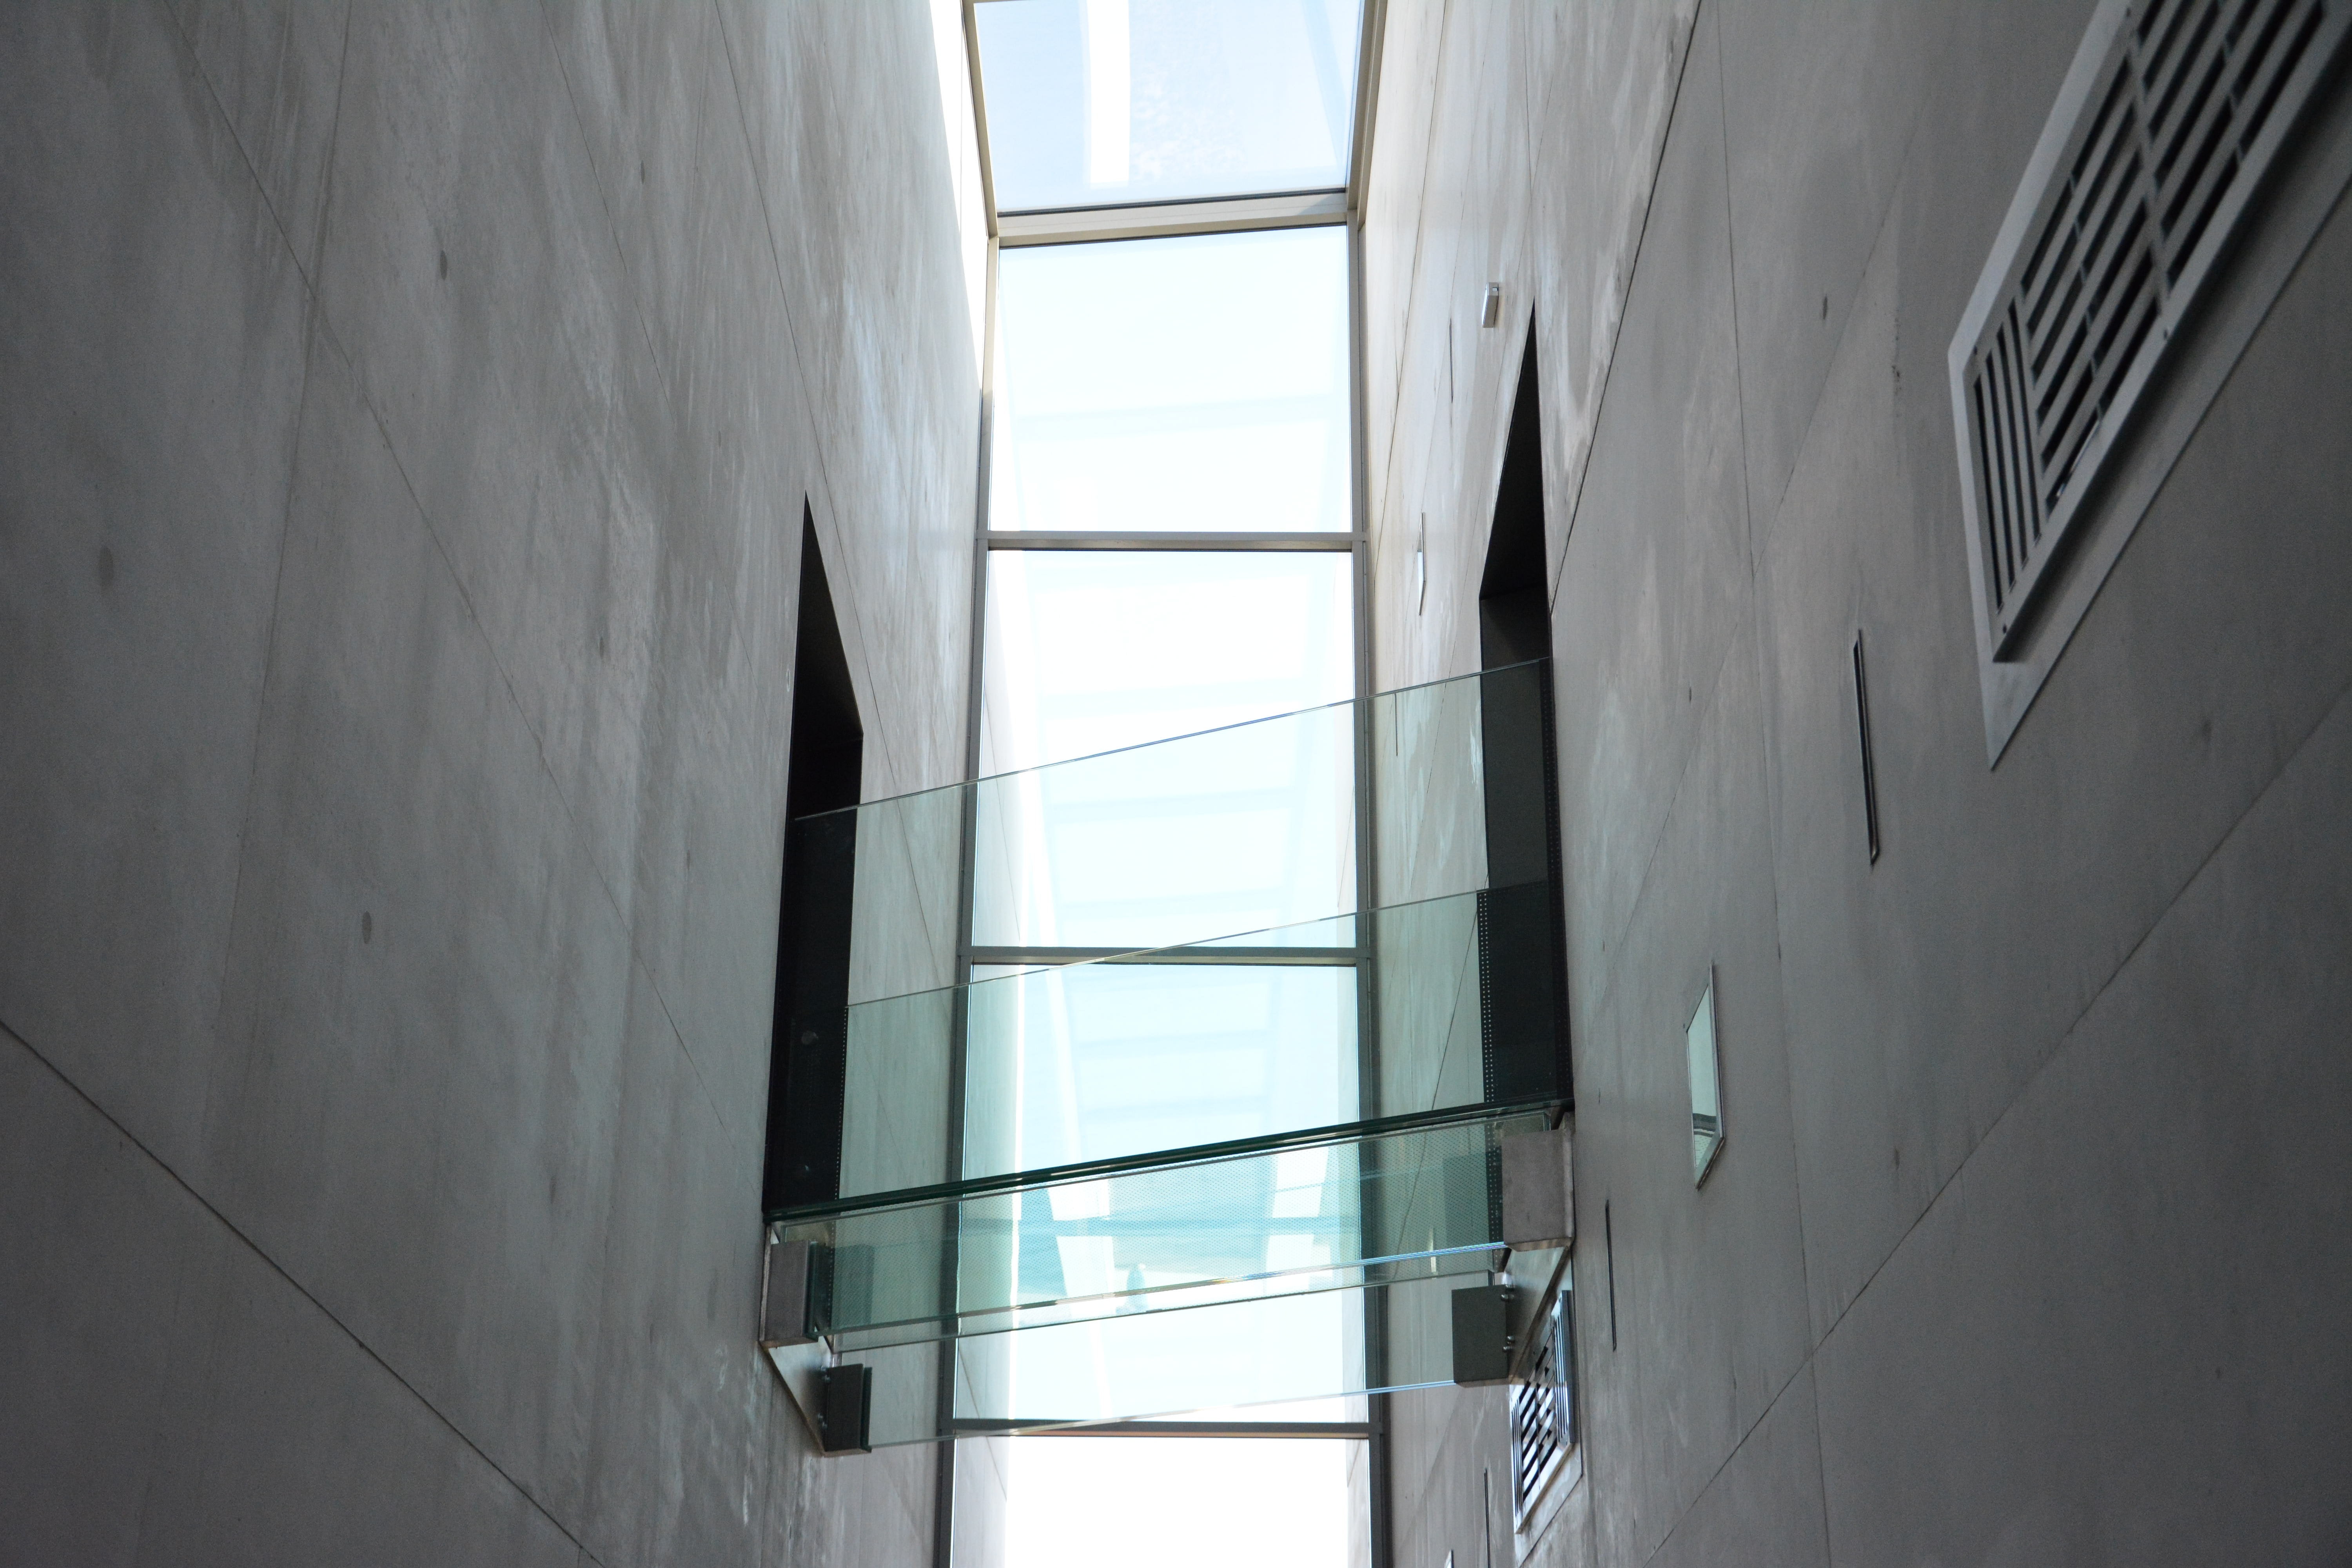 A glass skywalk connecting two parts of a building